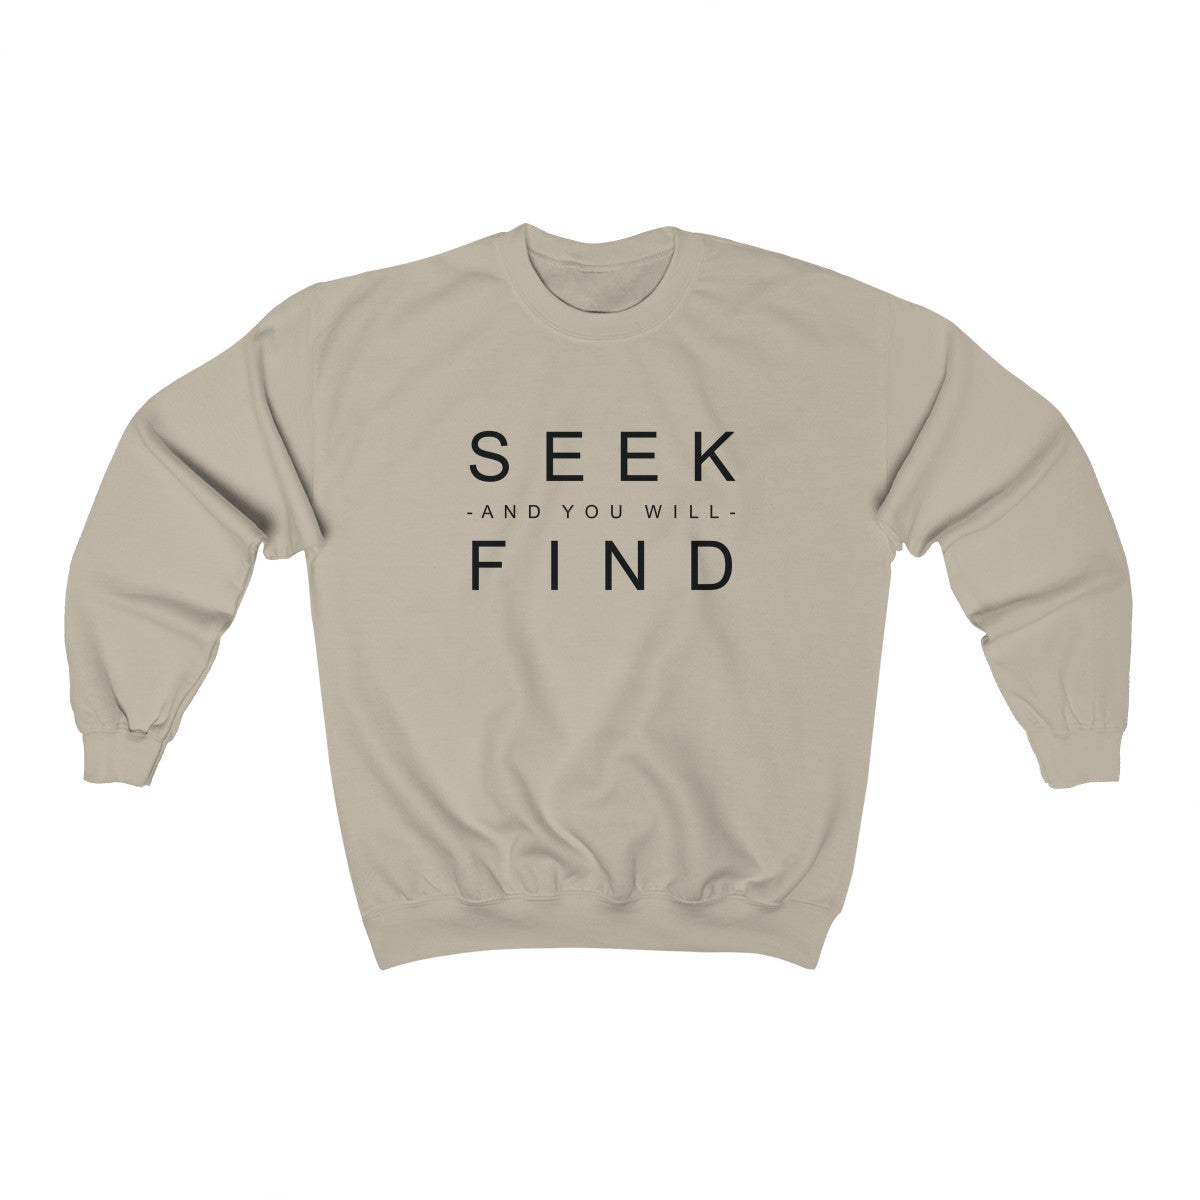 SEEK SWEATSHIRT